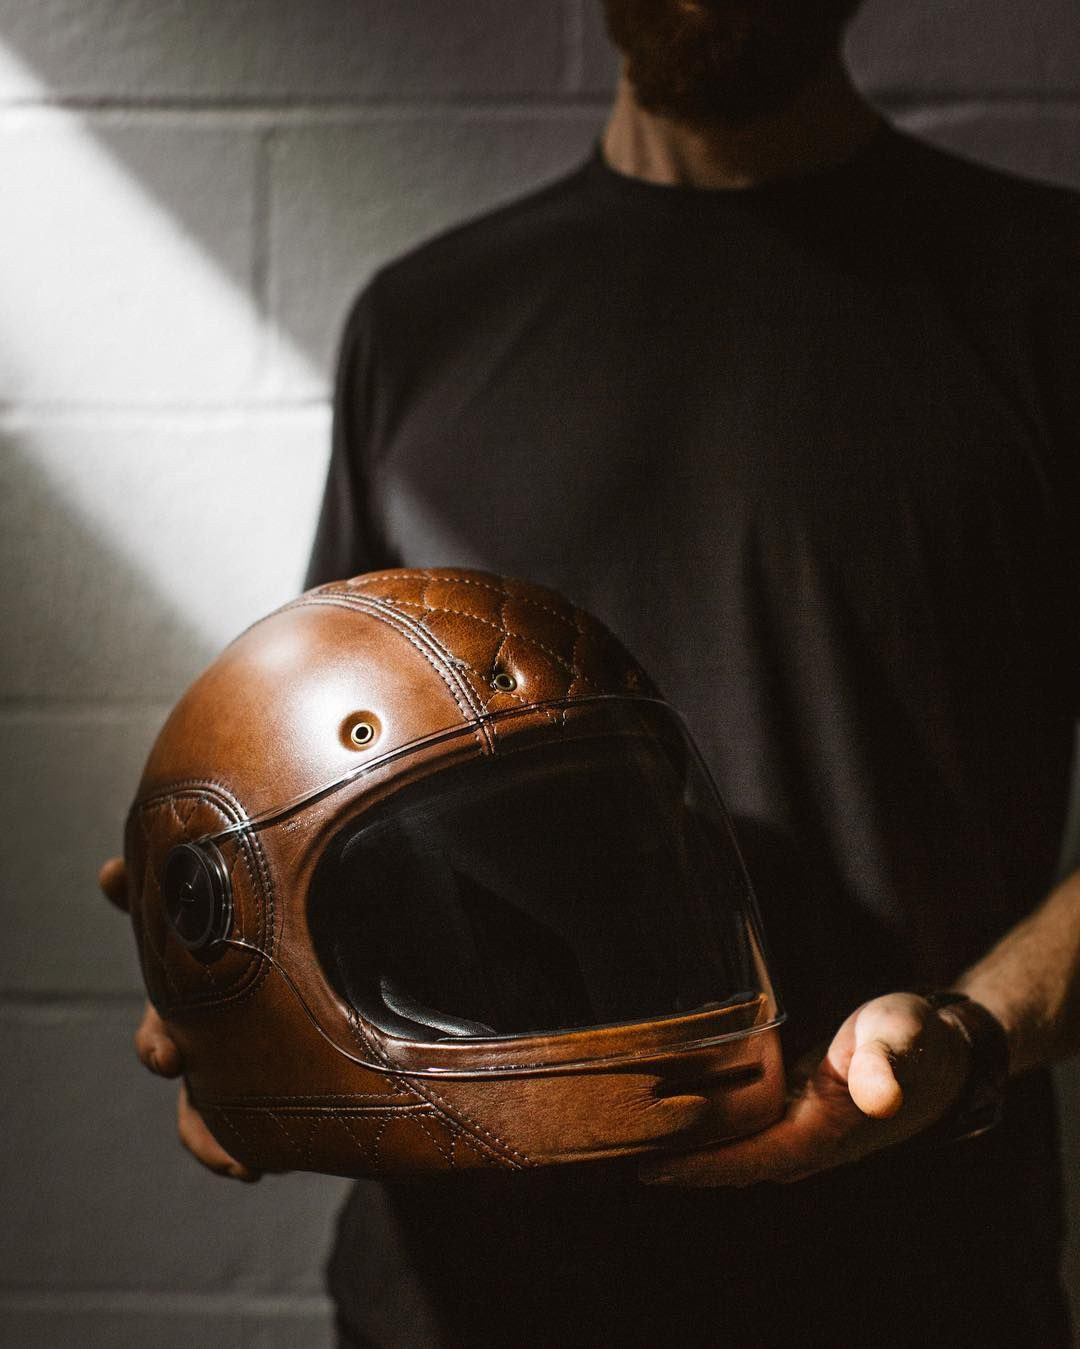 @larson_upholstery taking helmet customization to the next level. Visit www.sideroist.com to see more. Link in profile Photo  by @jennylinquist . #Sideroist #motorcycle #caferacer #larsonupholstery #bellbullitt #motorcyclehelmet #customhelmet by sideroist